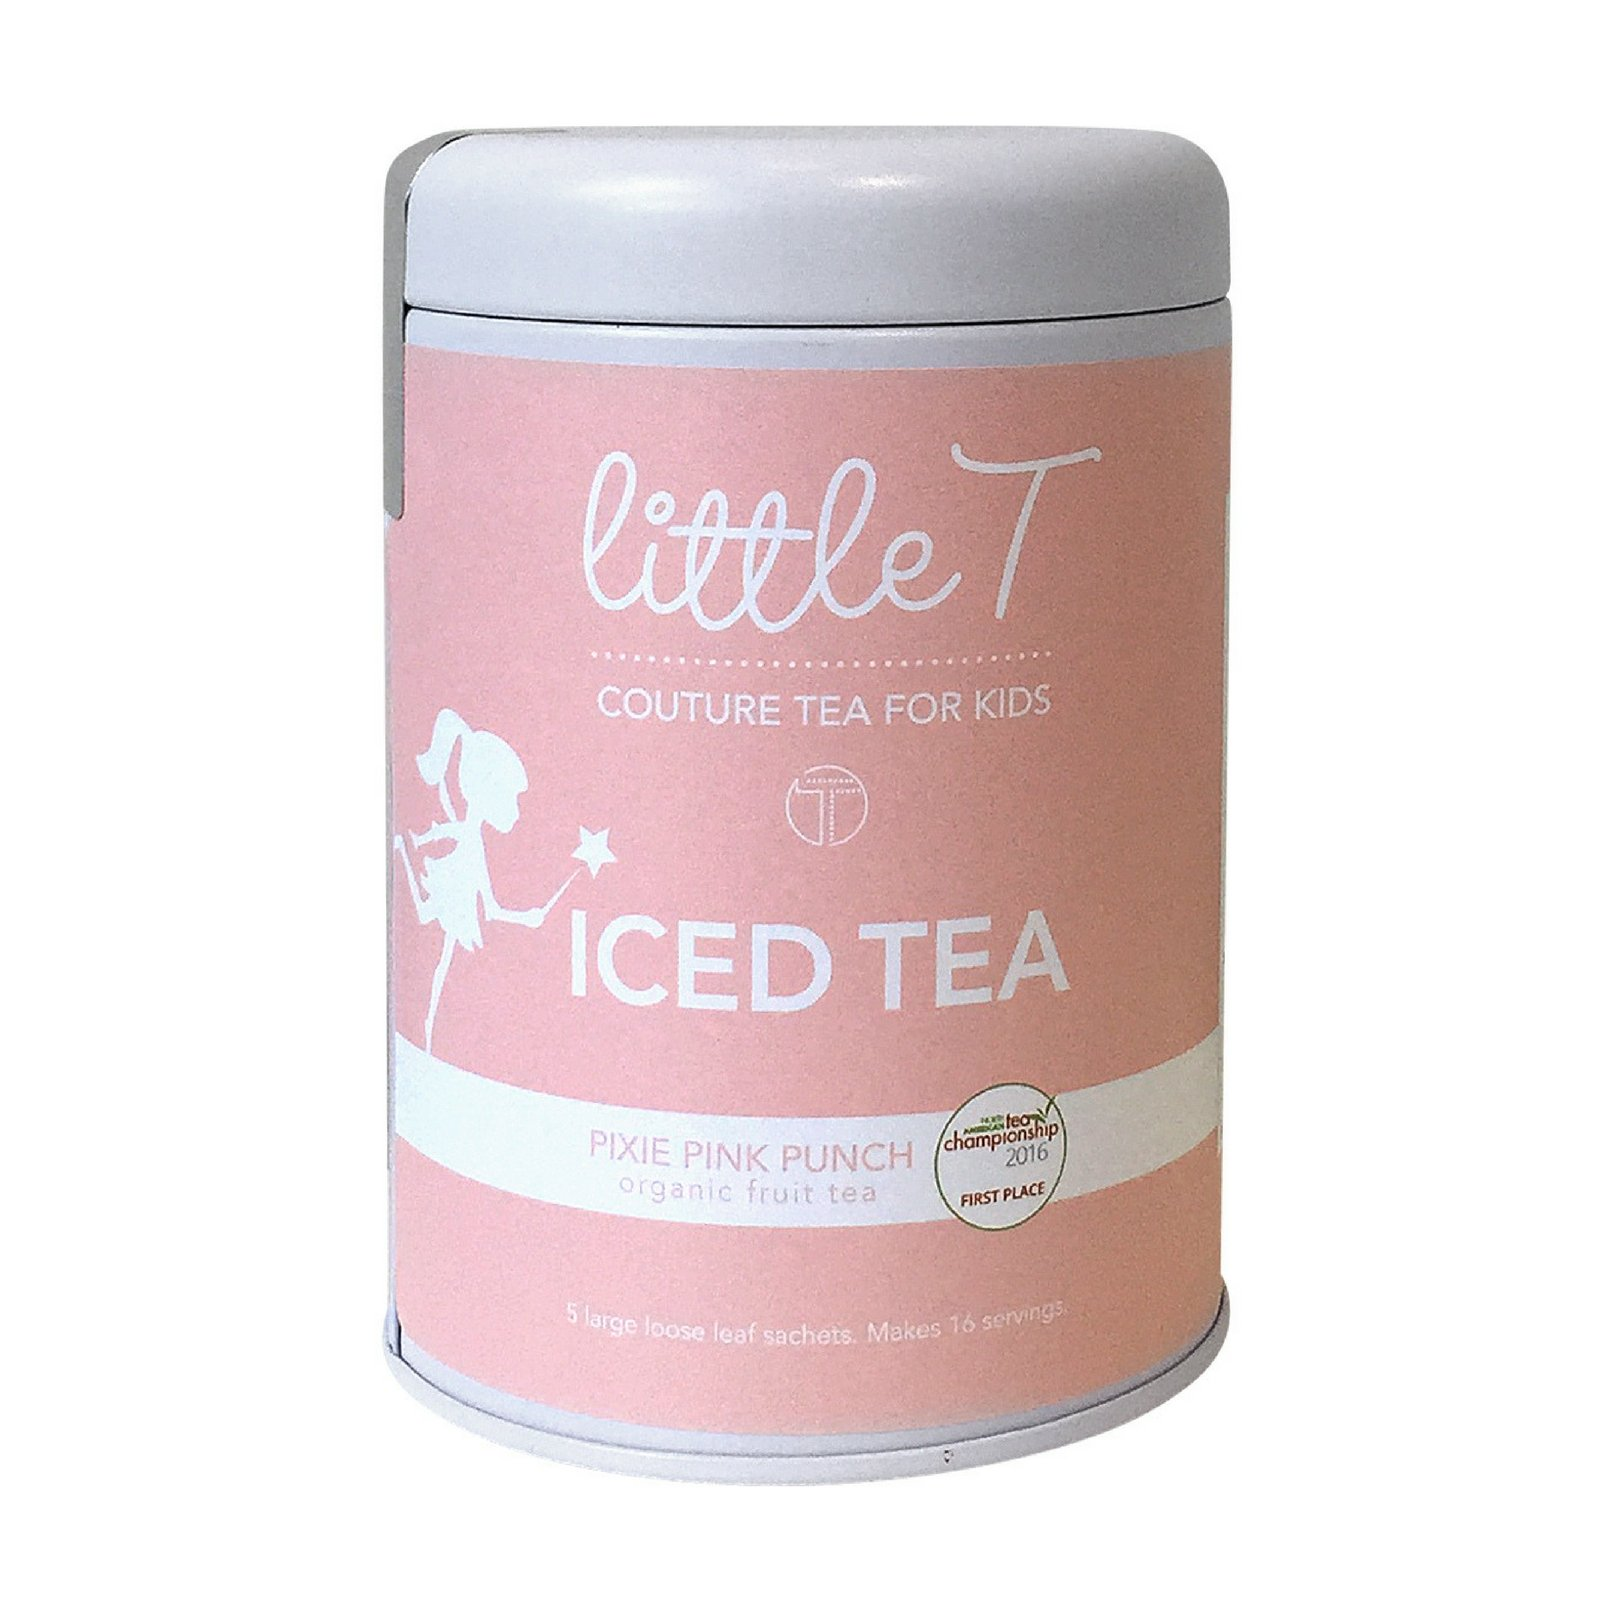 LITTLE T Pixie Pink Punch Organic Fruit Iced Tea for Kids. Sugar-free, Caffeine-free, Antioxidant-rich, Immune-Boosting Herbal Iced Tea Sachets (Iced Tea Tin - 90g)